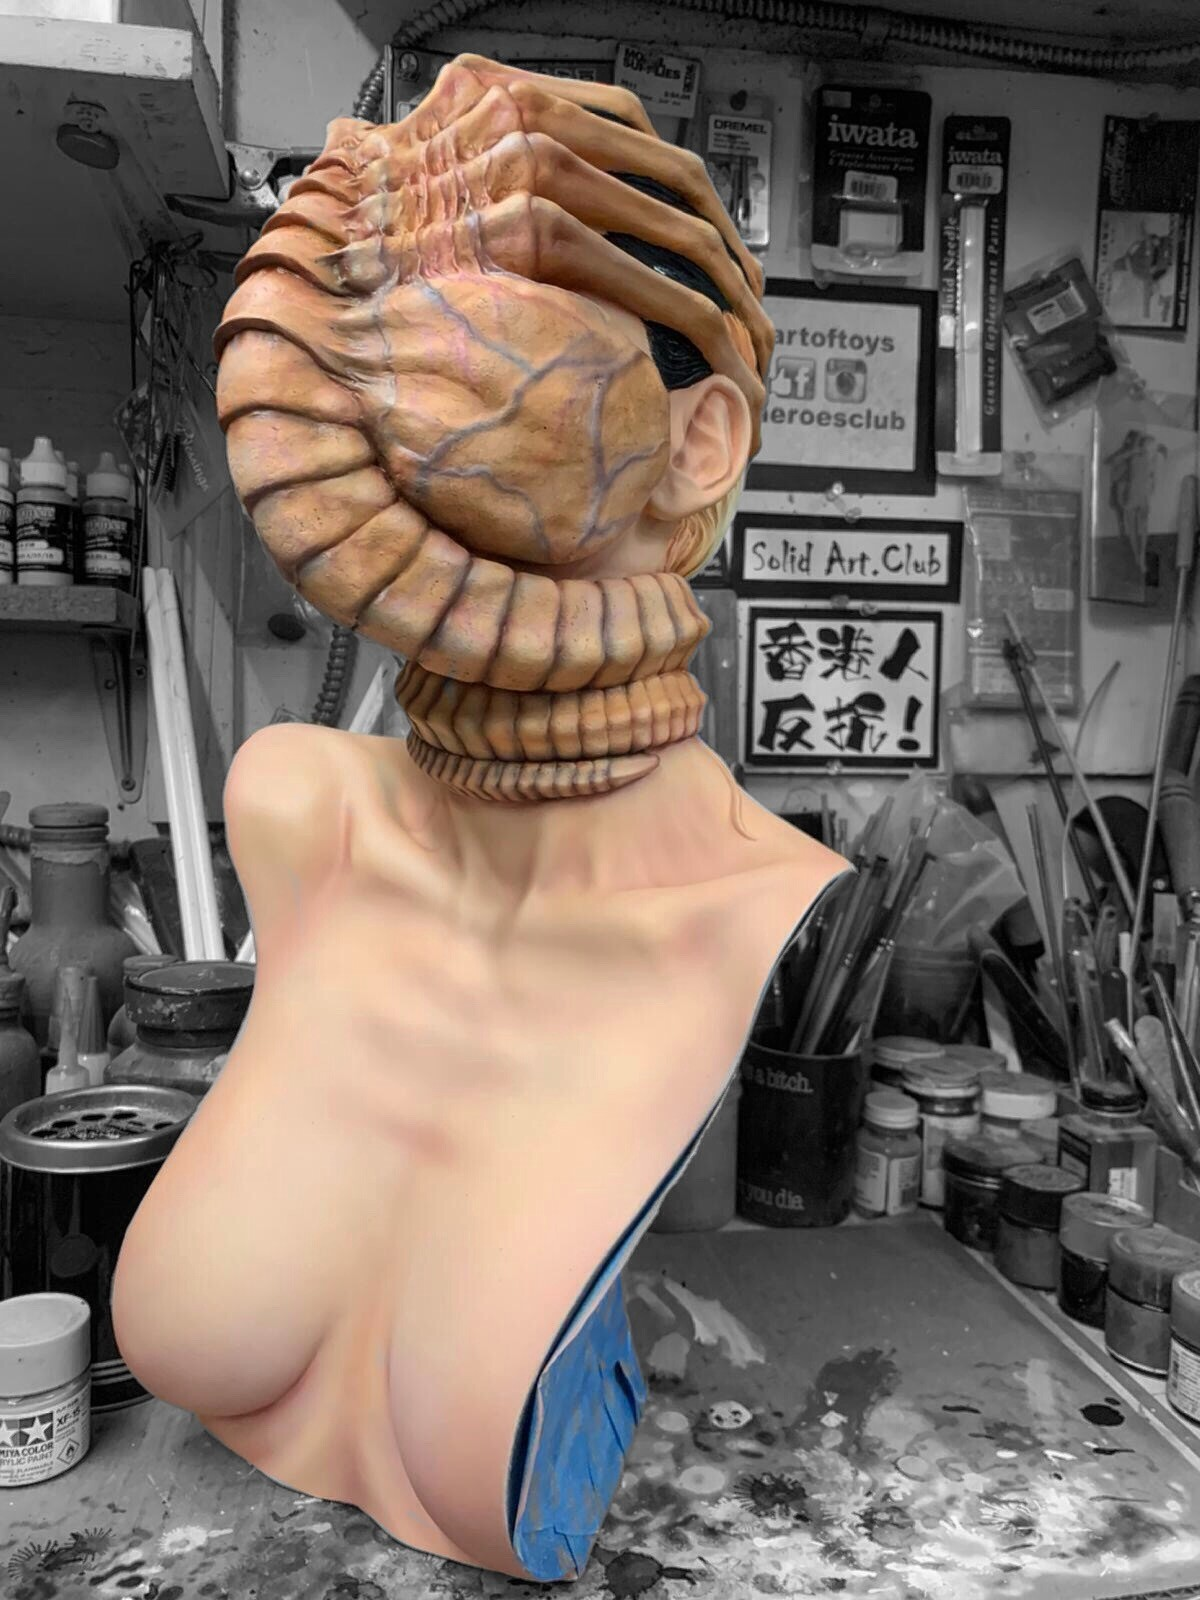 Alien Facehugger The Colonist 1:1 scale Bust Art Statue work in progress...